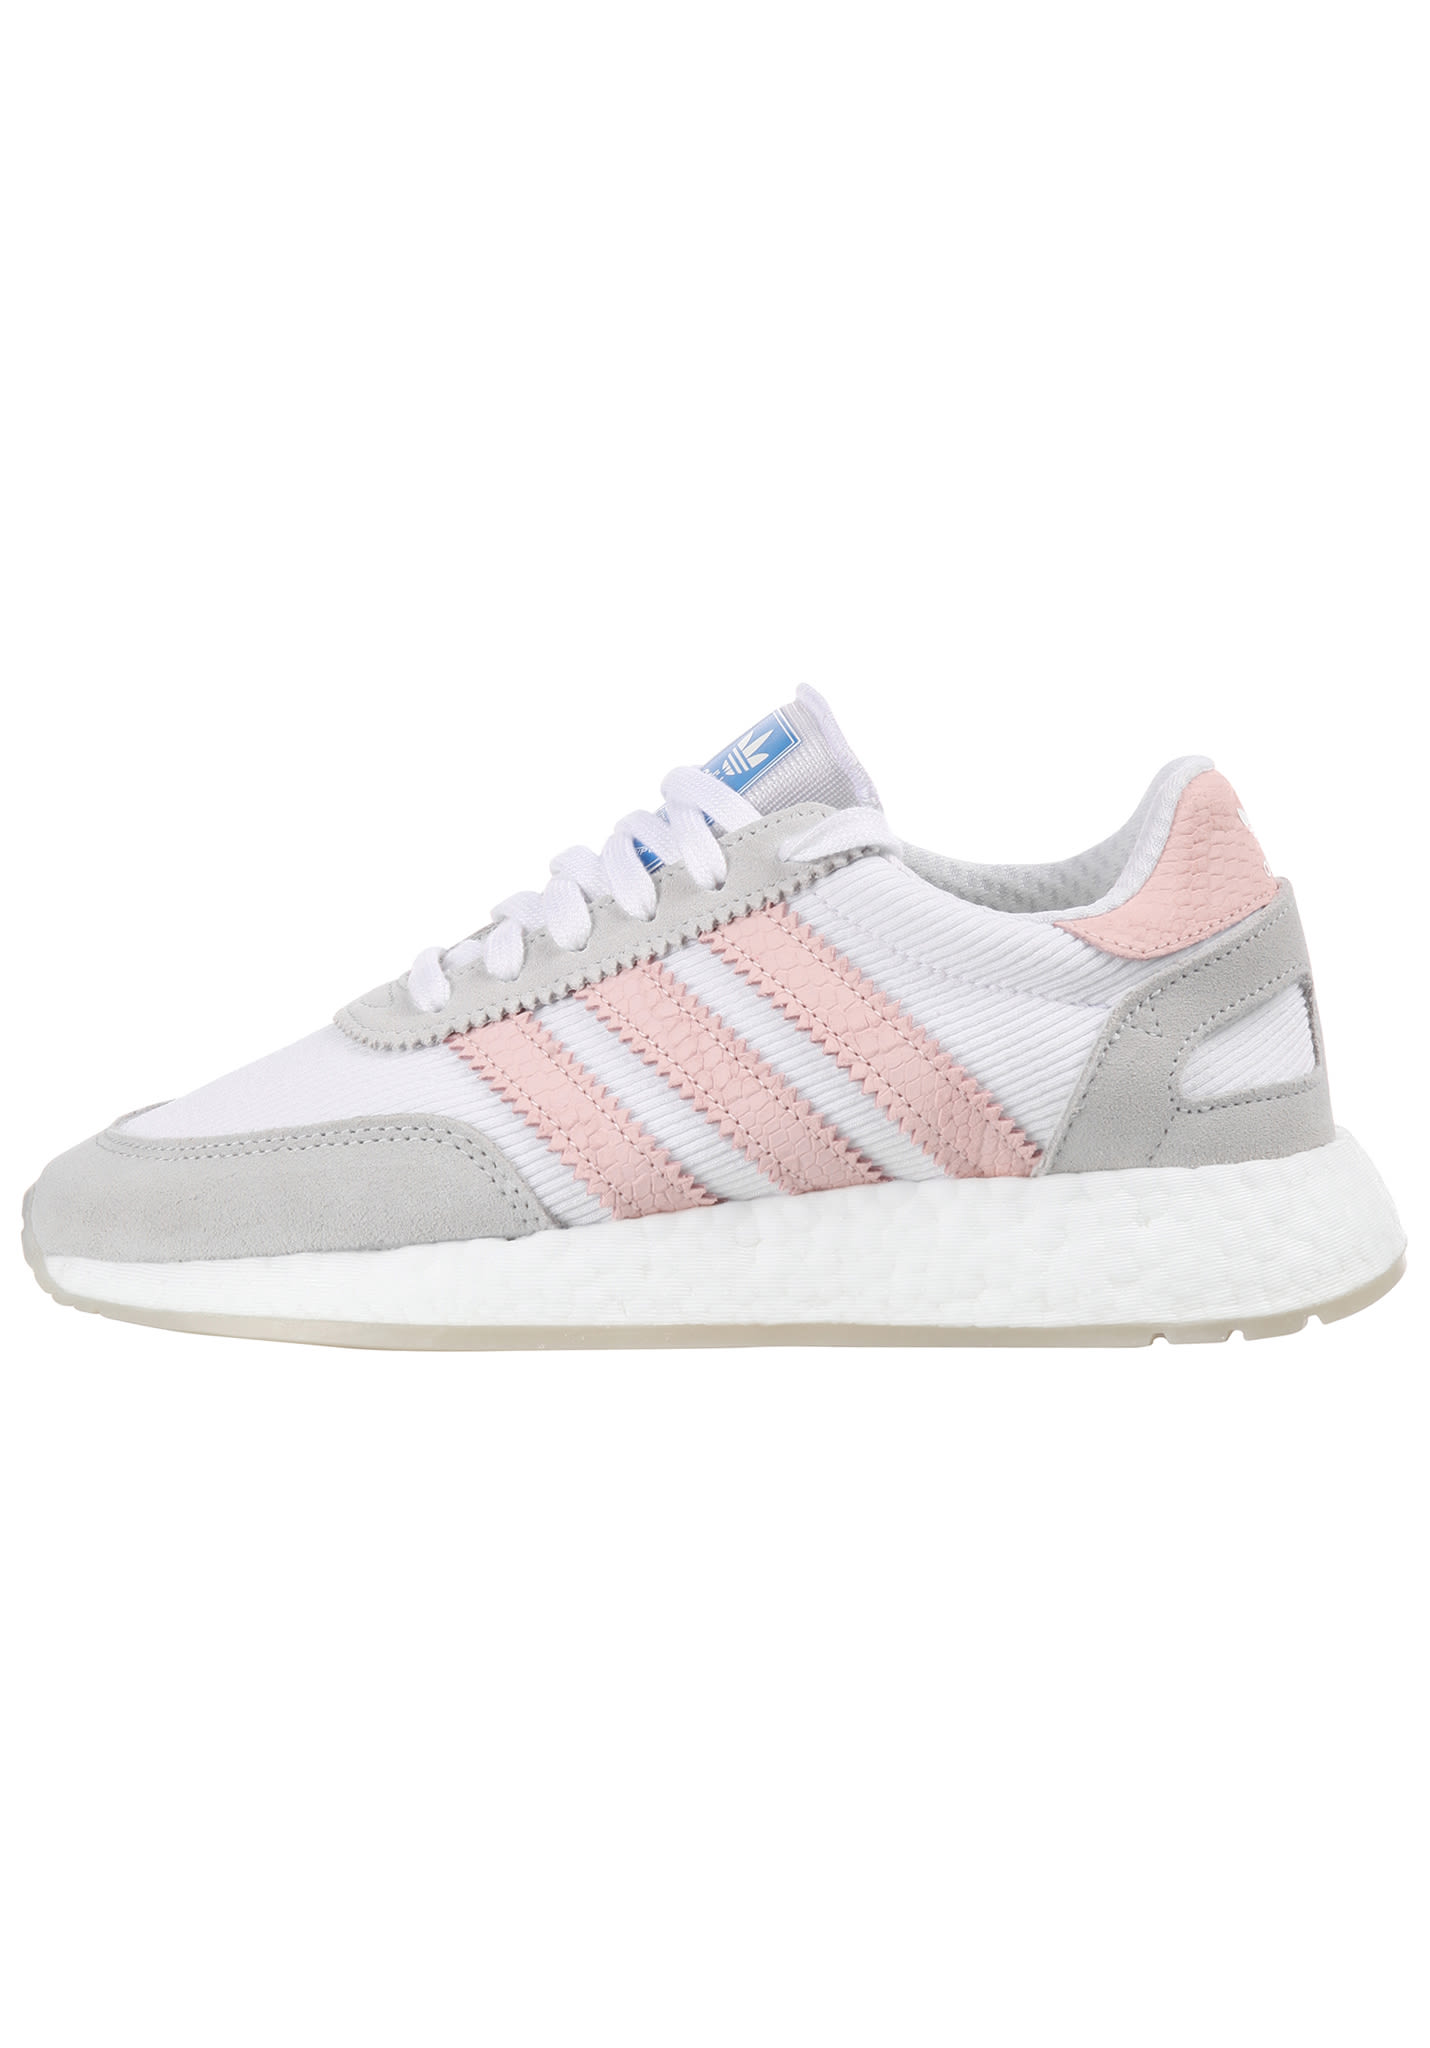 ADIDAS ORIGINALS I 5923 Sneakers for Women White